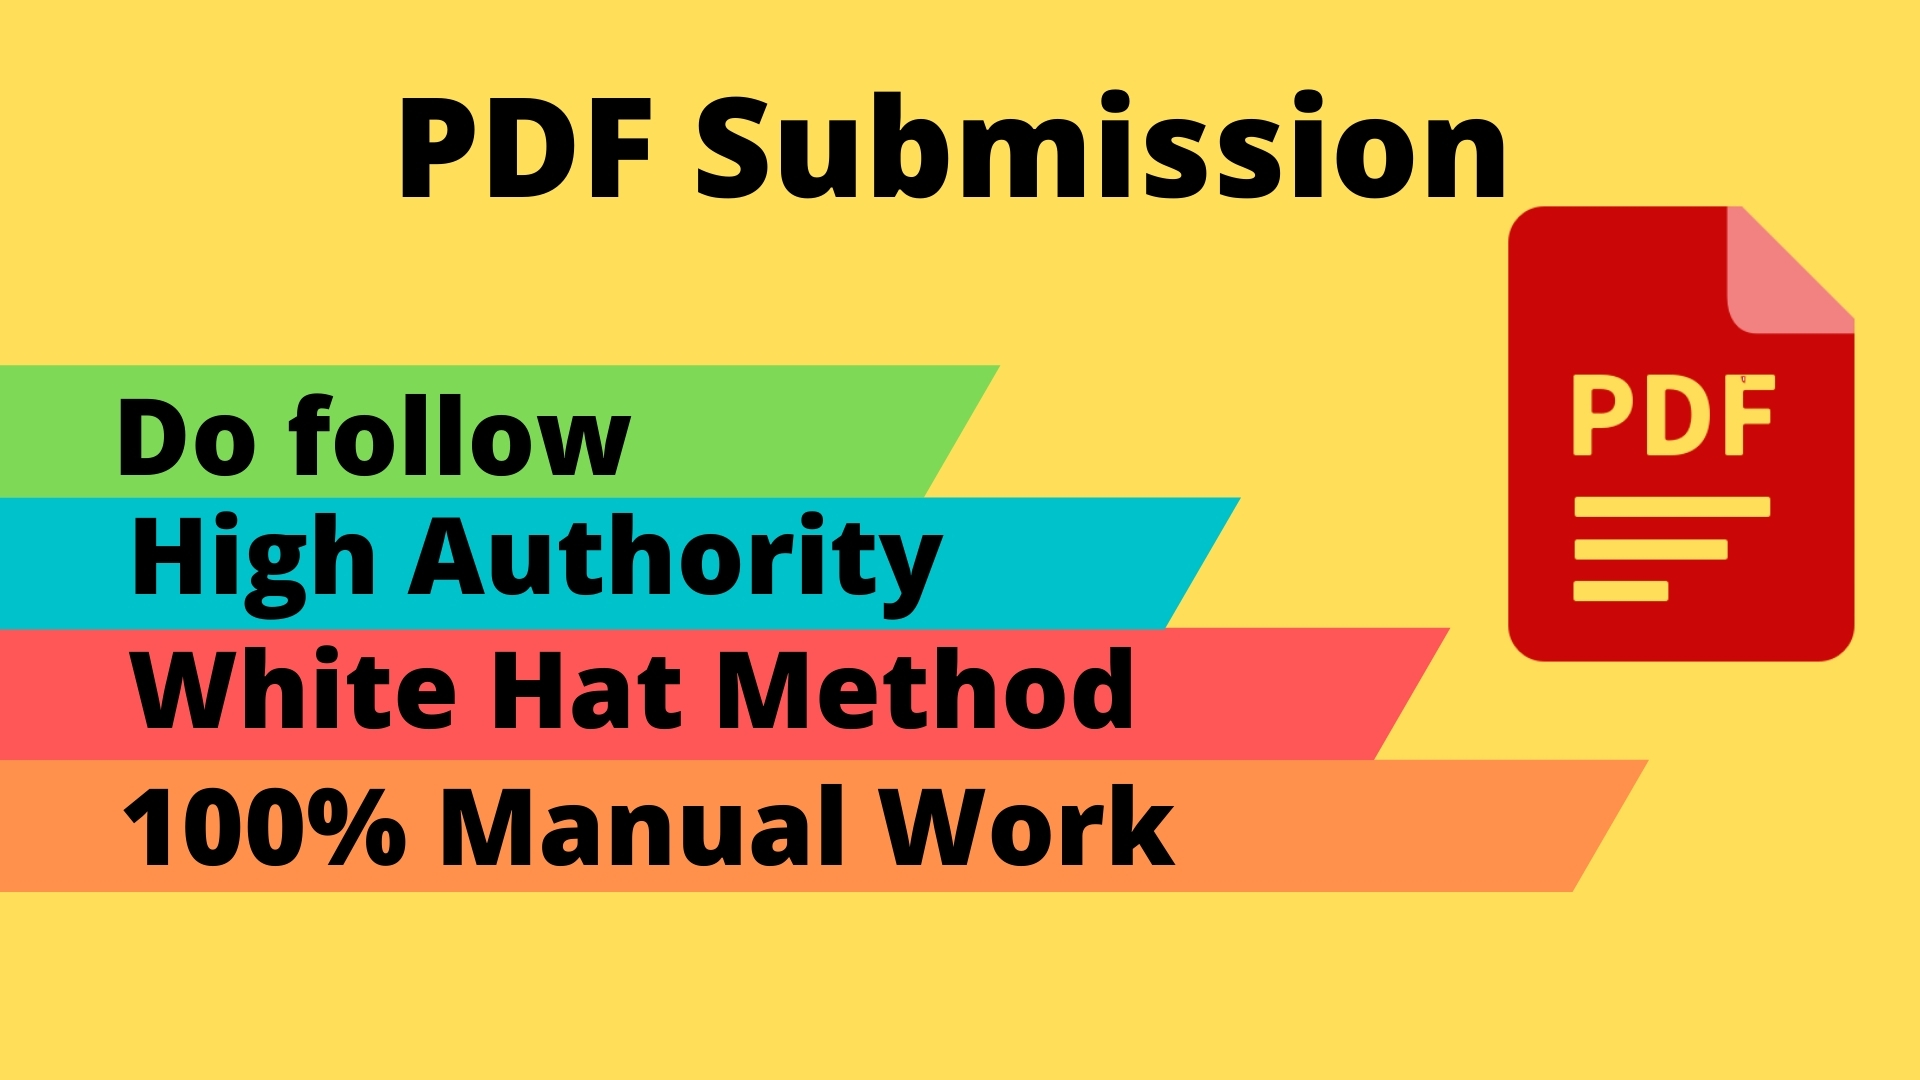 I will do 50 PDF submission manually on high authority document sharing sites